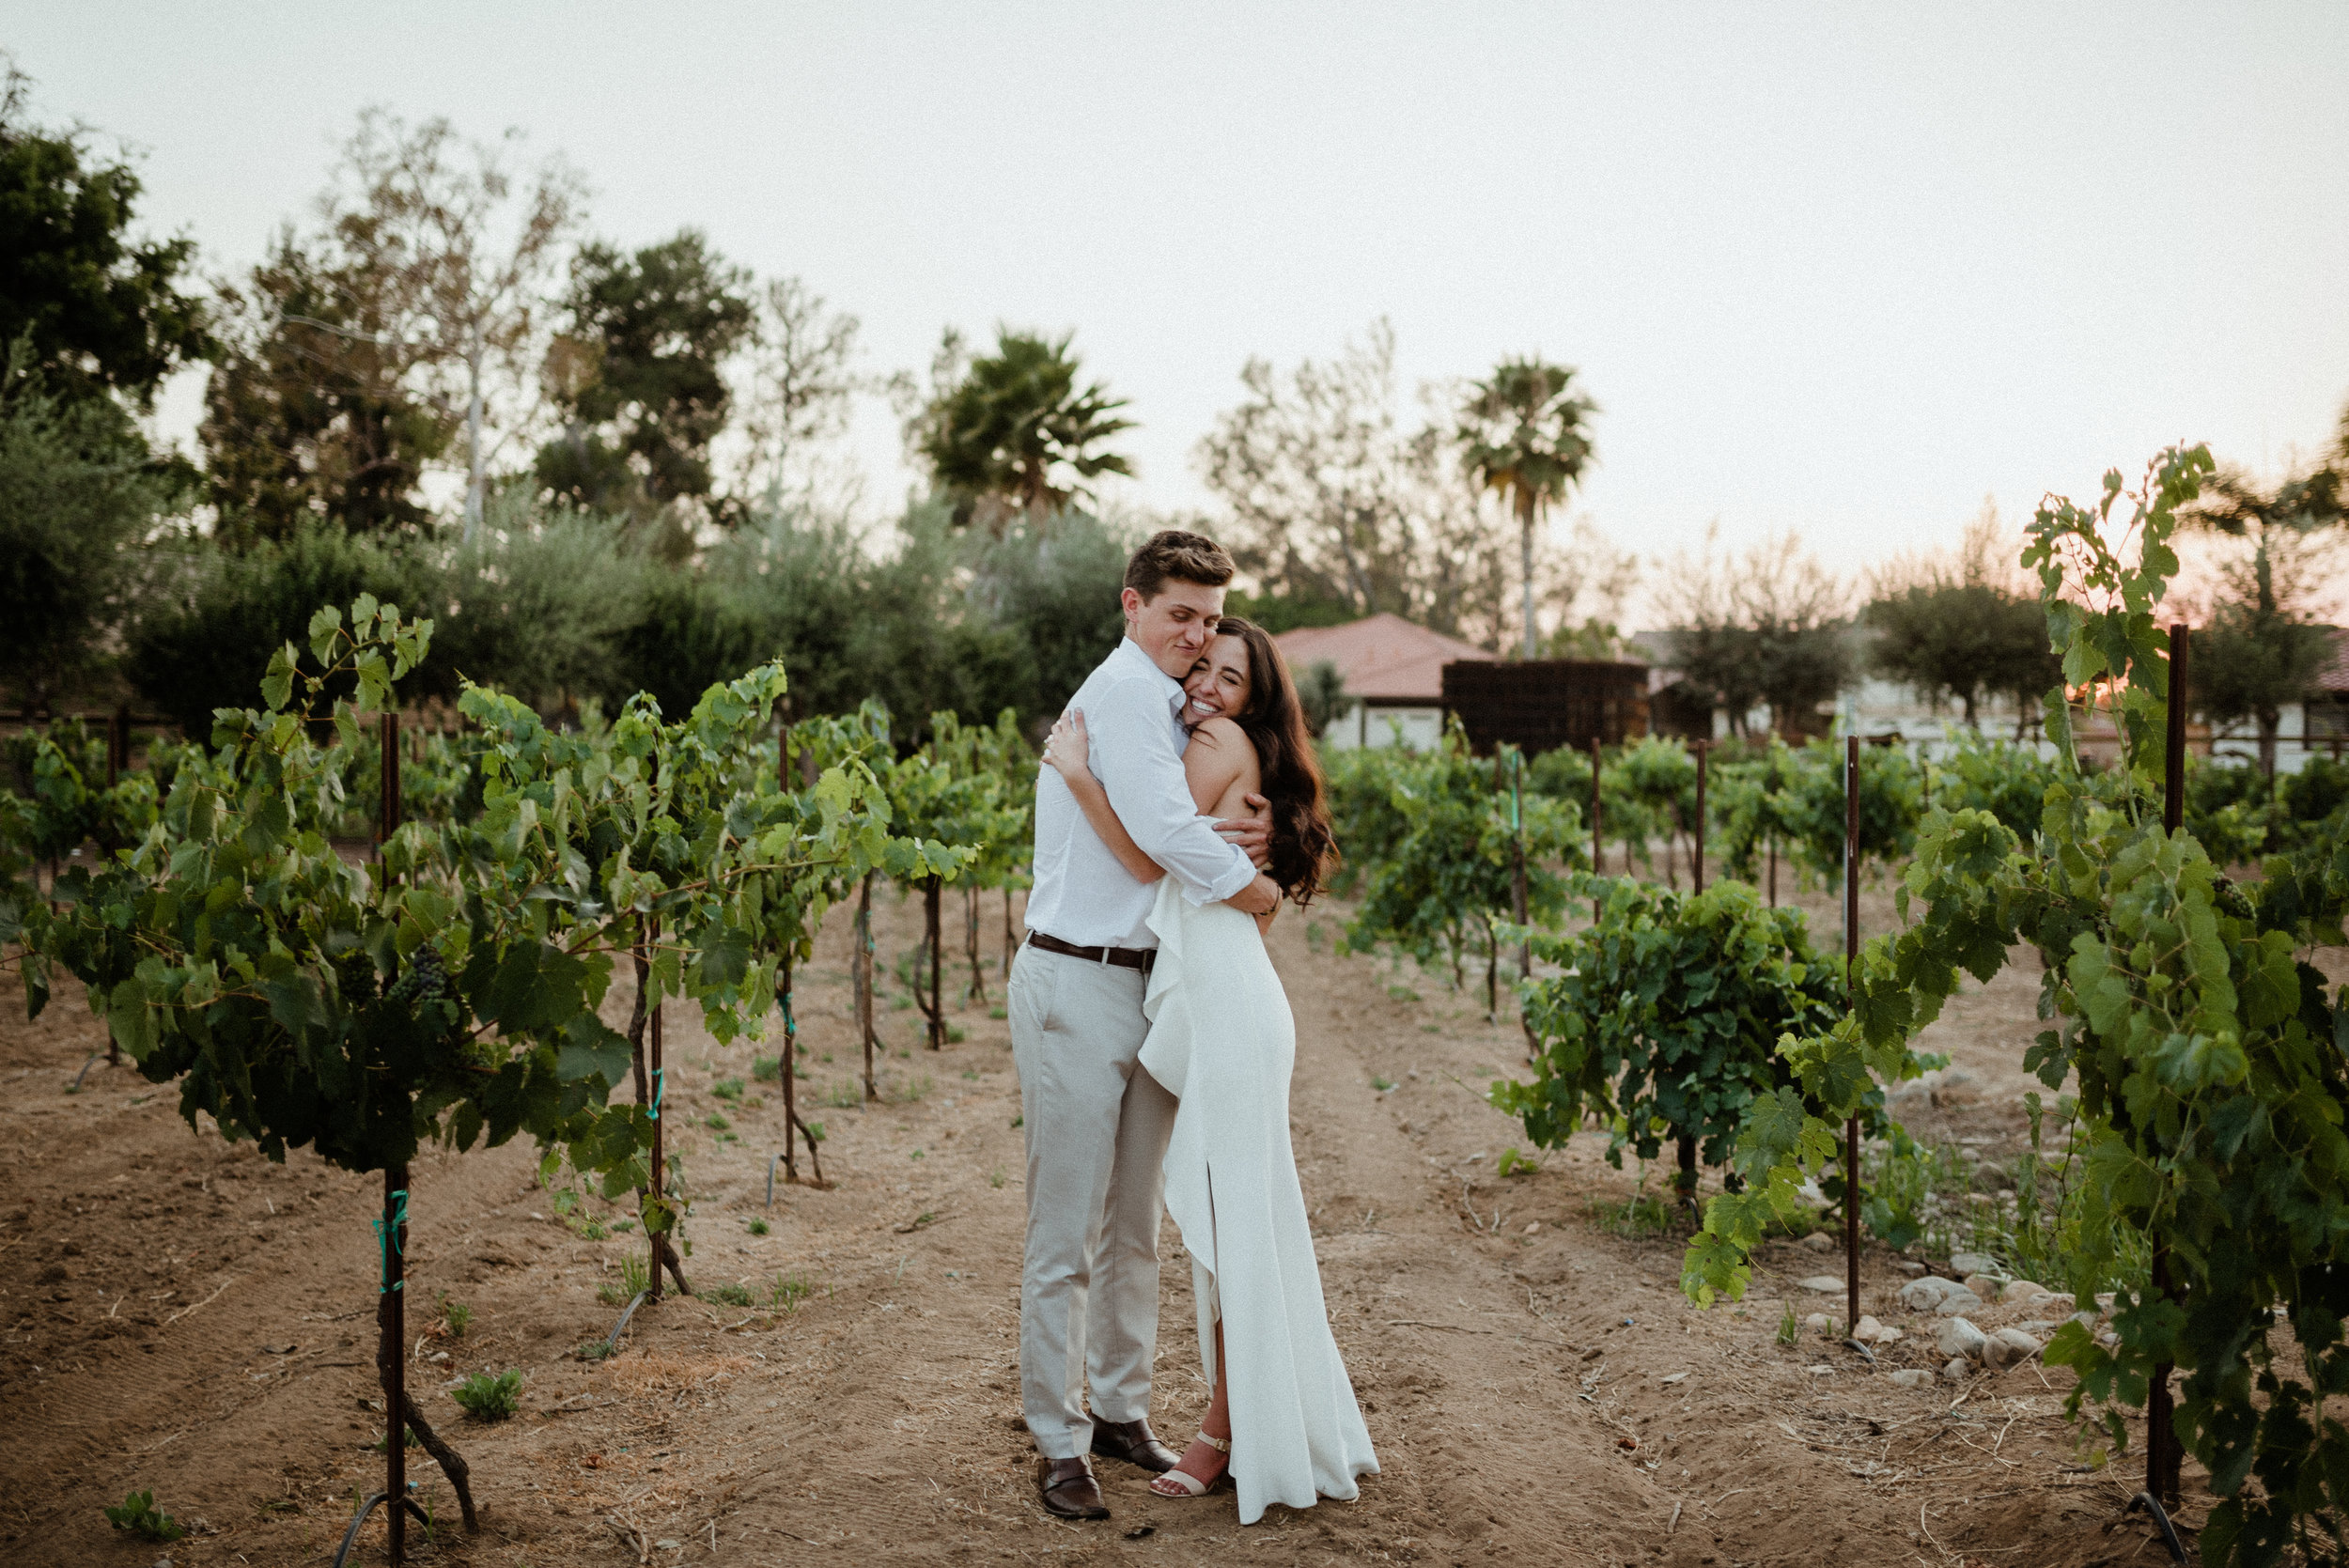 SanDiego-California-Bernardo-Winery-WashingtonDC-wedding-photographer-earthy-desert-wedding-LizRachelPhoto_0032